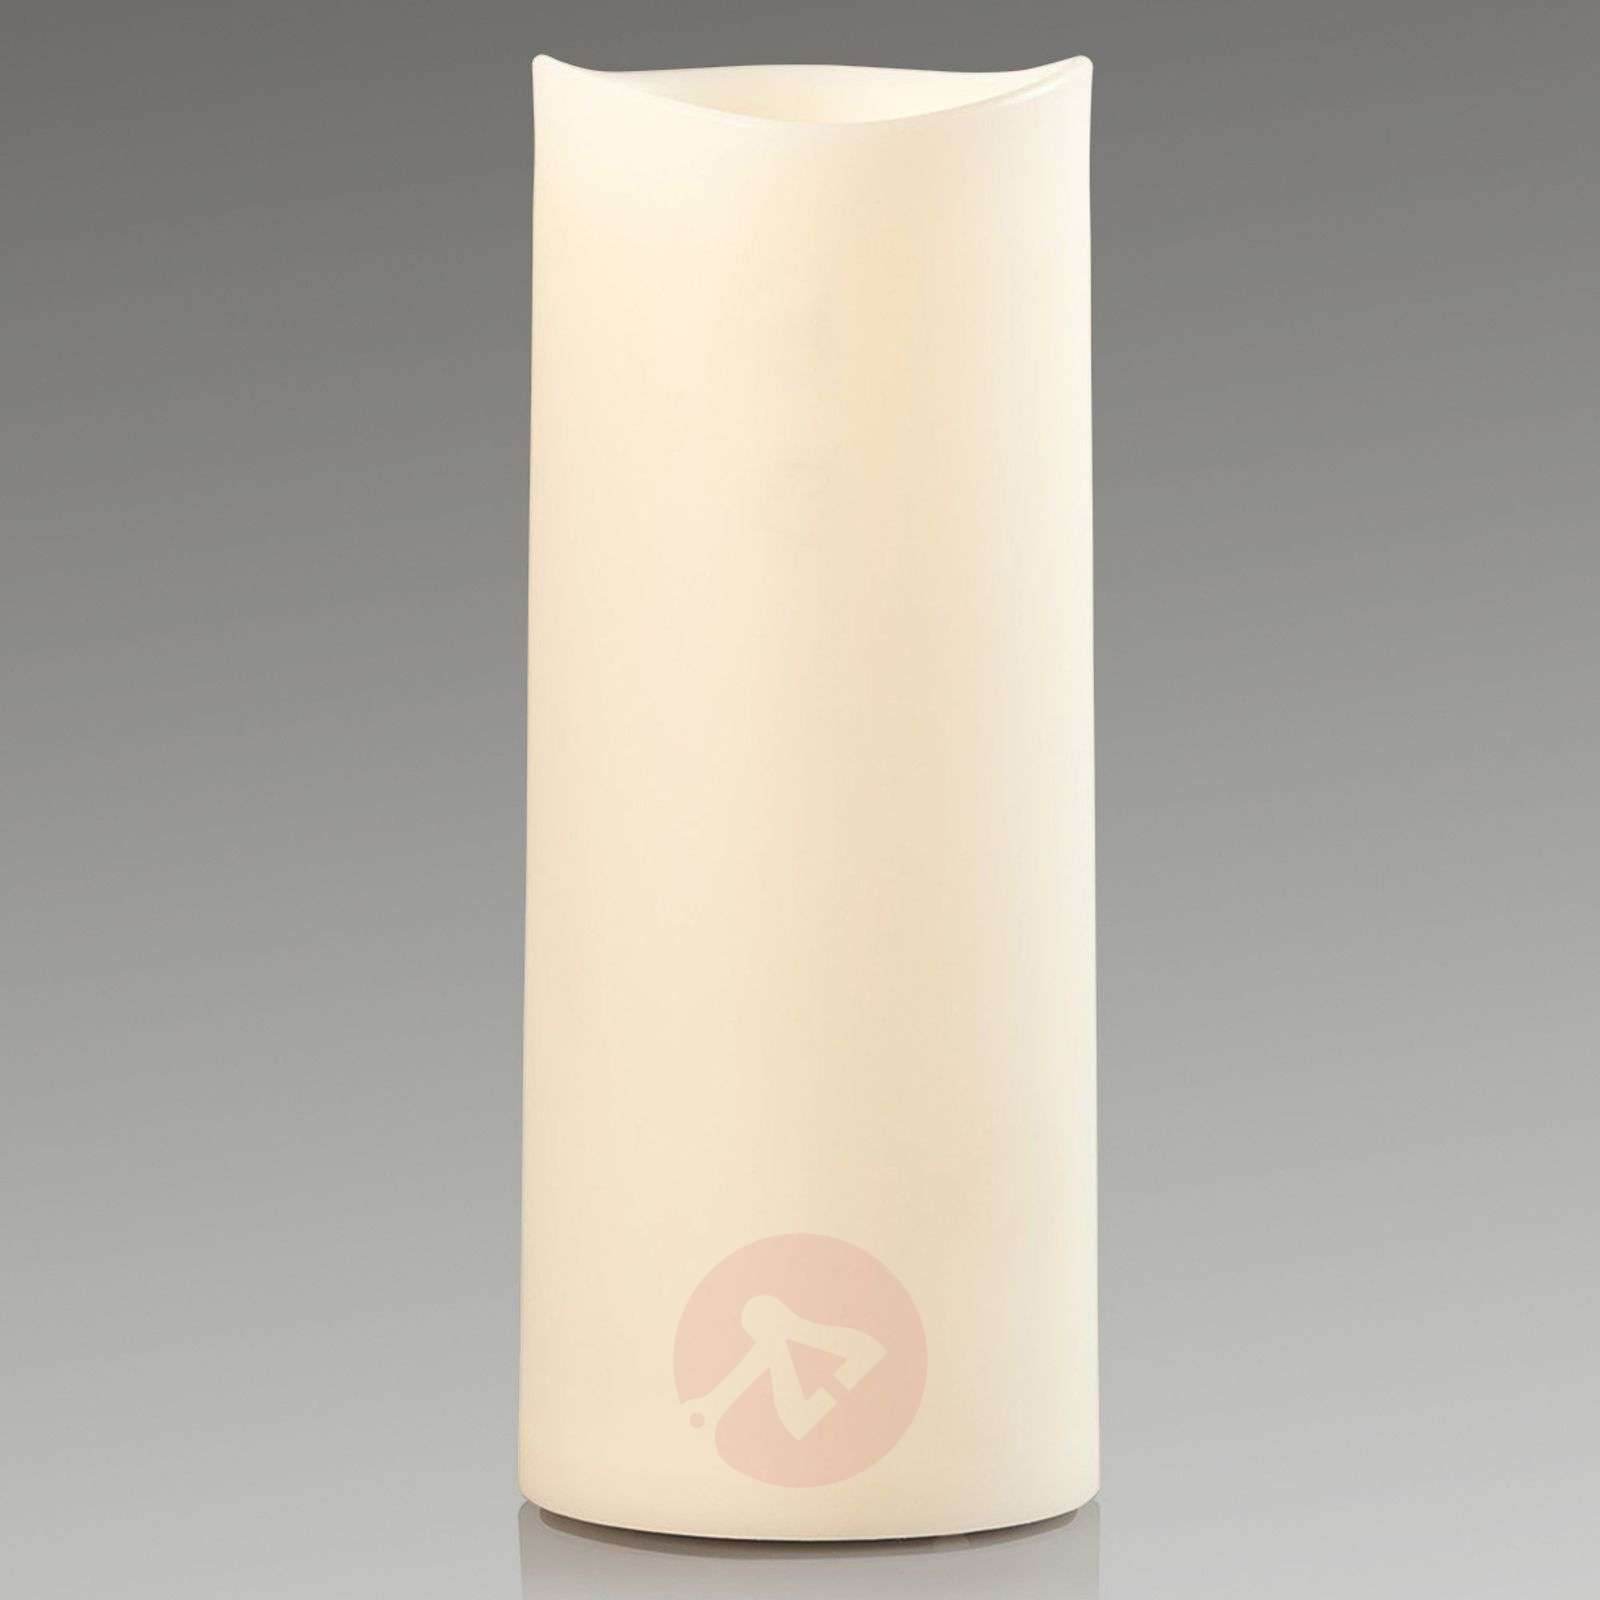 Lampe LED Outdoor Candle, 22 cm-8507585-01